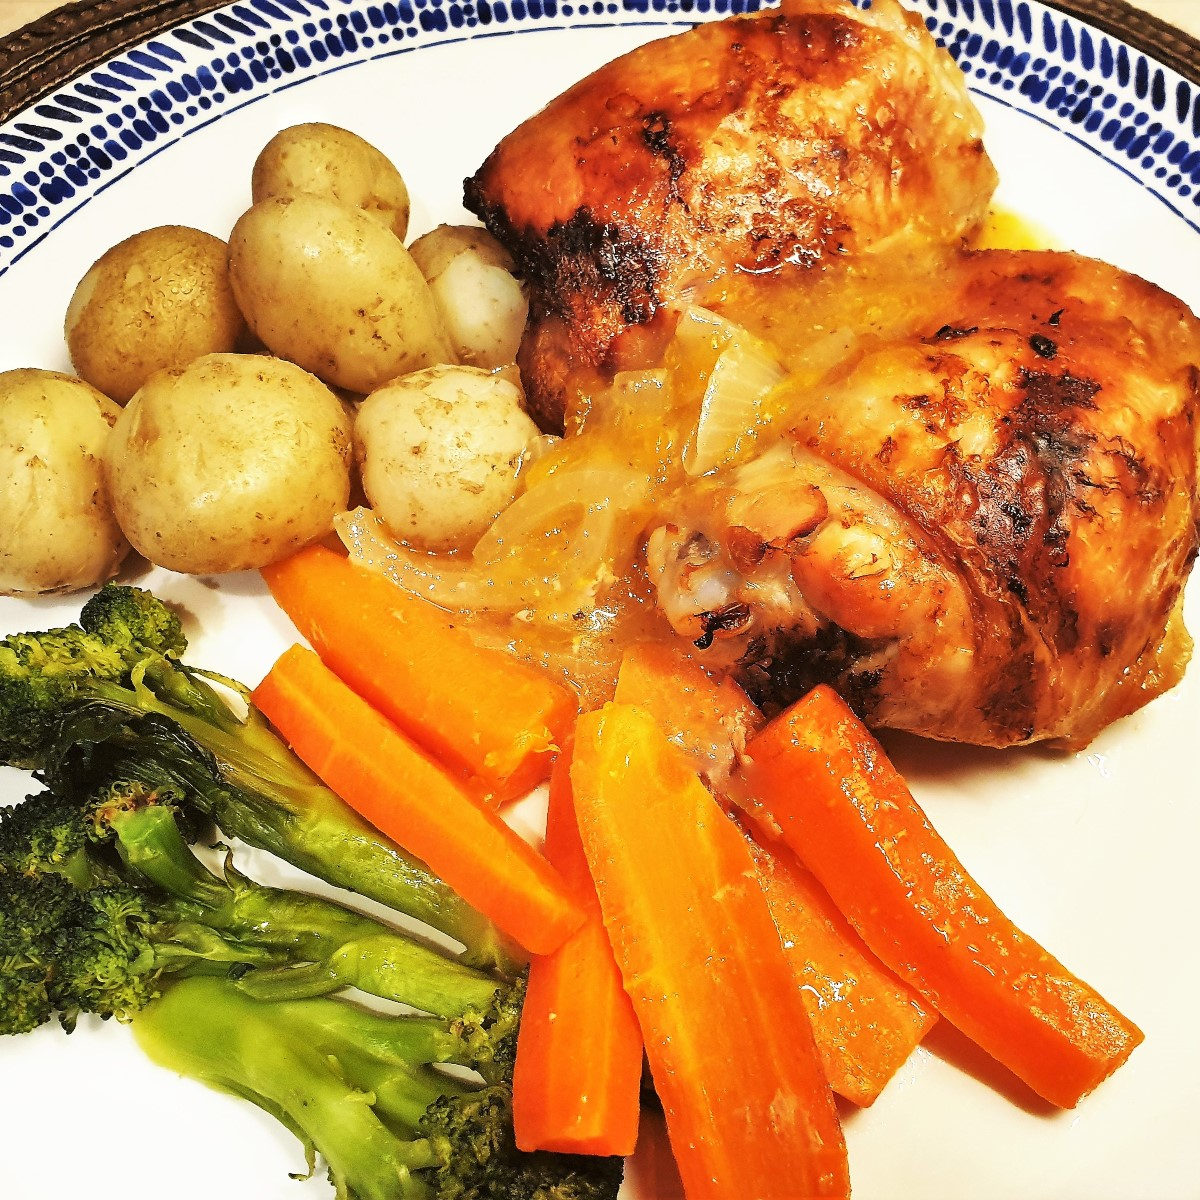 A plate of orange chicken thighs with potatoes, carrots and broccoli.